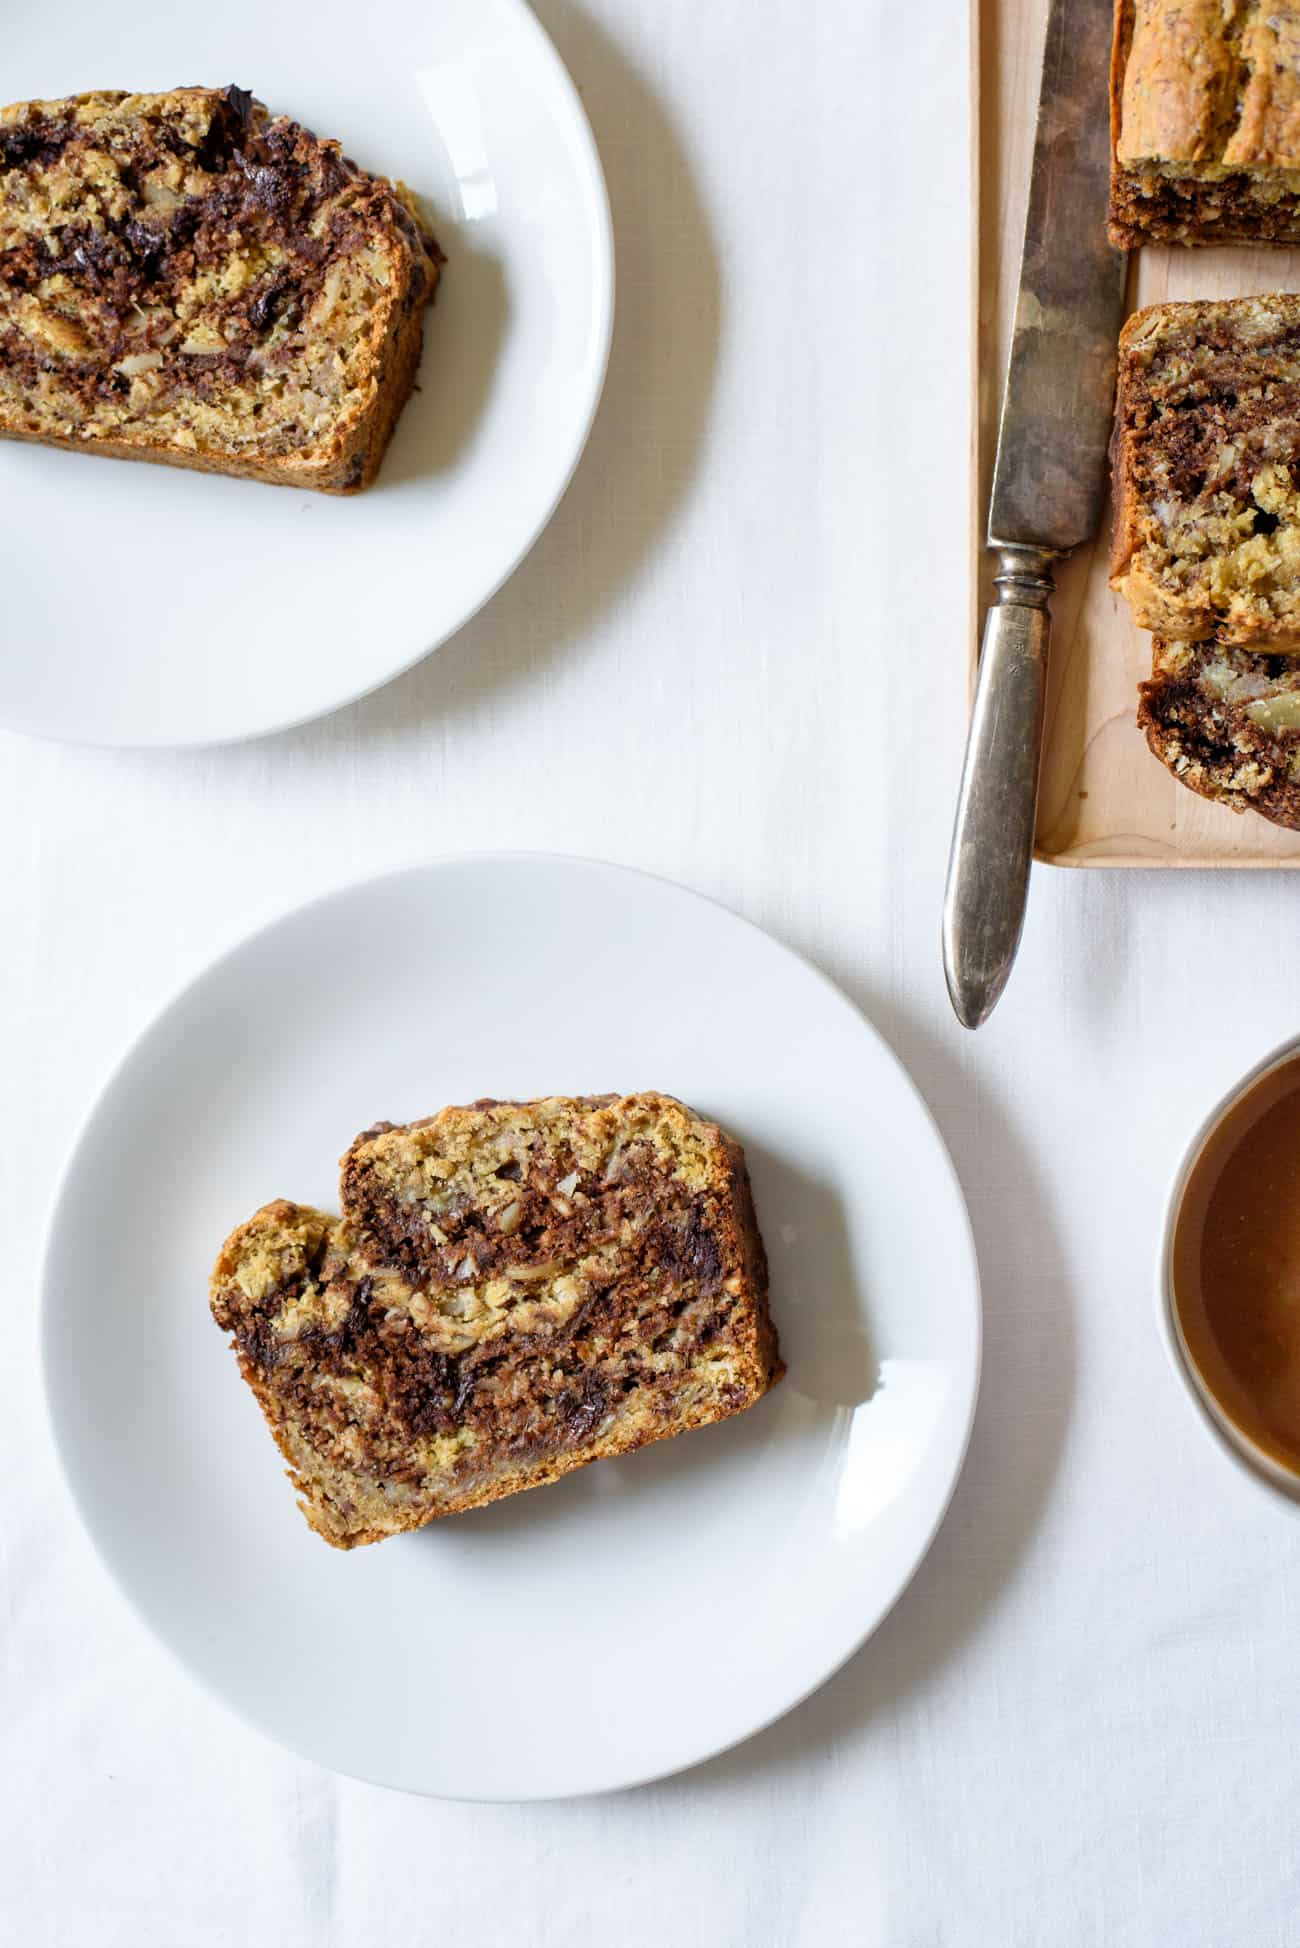 2 slices of marble banana bread on while plates on while tablecloth next to cup of coffee